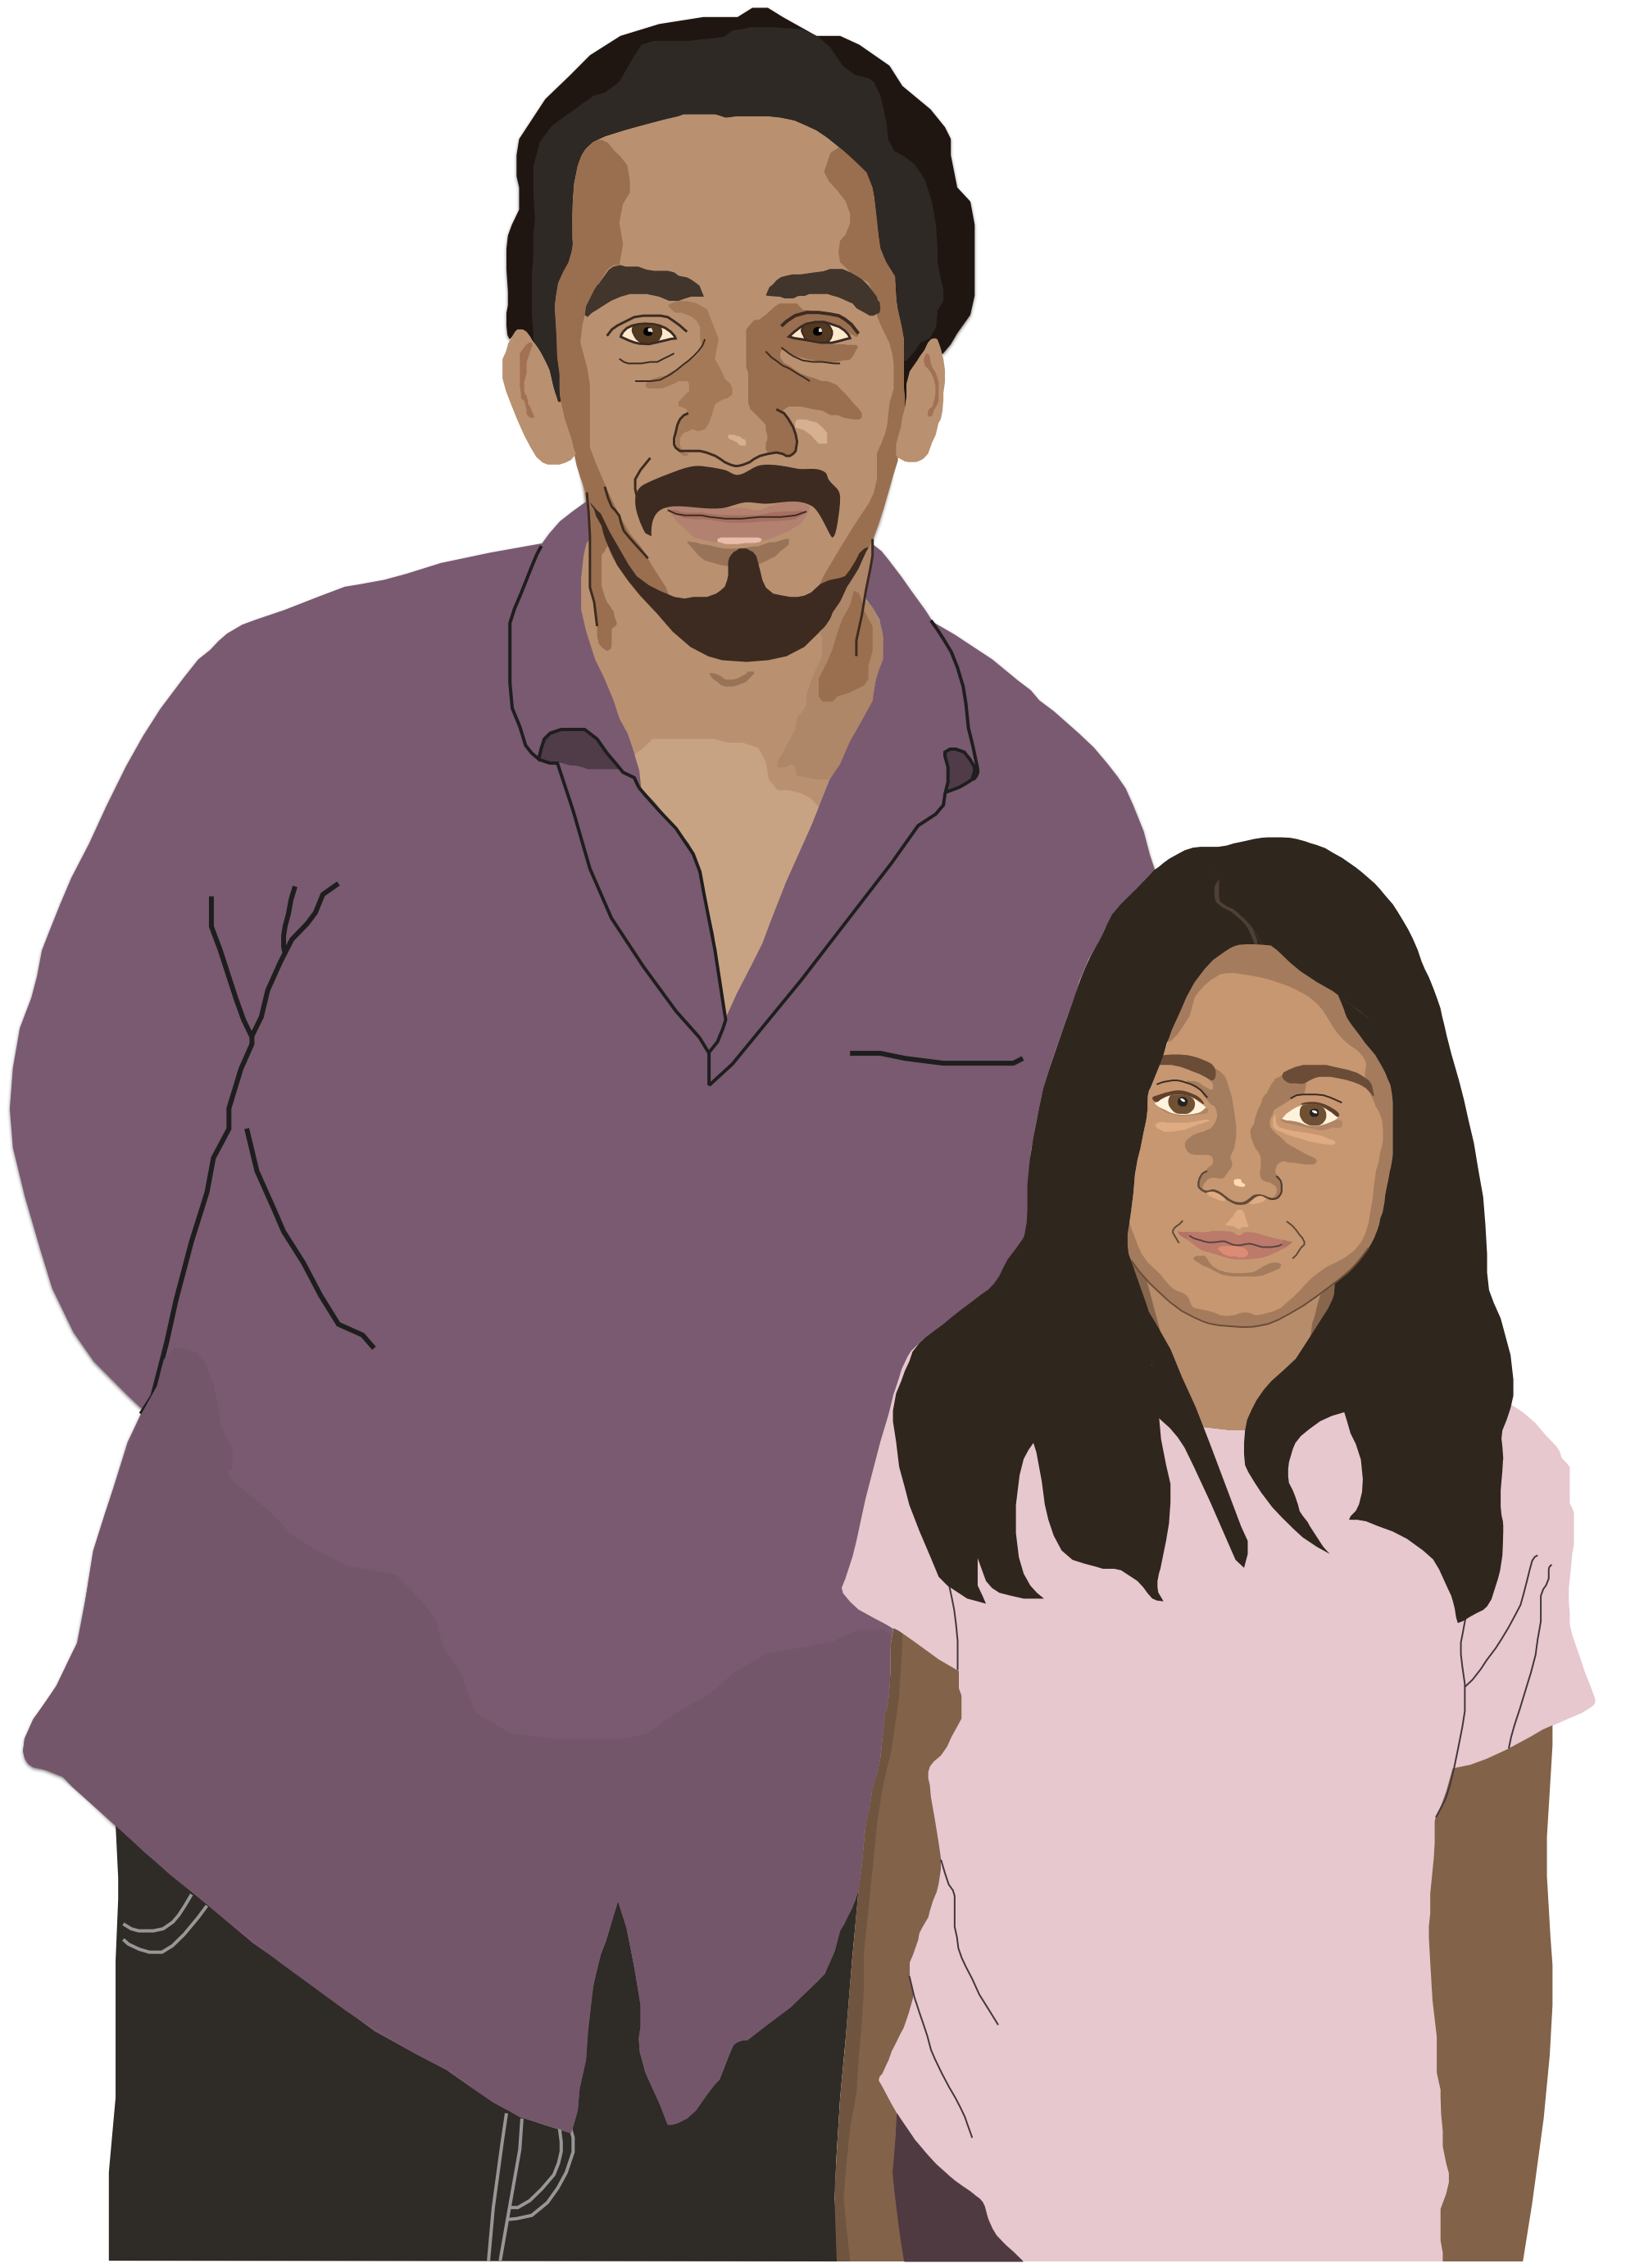 José - José is a father, who for nine months, was detained by ICE and unable to care for his daughter. Jose moved to the U.S. when he was 15-years-old--more than two decades ago. He was granted a $20,000 bond but raising that amount is personally out of his reach. As a result, he was stuck in detention and unable to defend himself or provide crucial evidence to a judge that could allow him to obtain permanent legal status.After nine months, we were able to pay most of José's bond and gain his release. Now José is staying with his cousin while he prepares for his hearing in July. He is able to see his 9-year-old daughter and collect evidence to try to stay in the United States with his daughter and community of more than two decades.